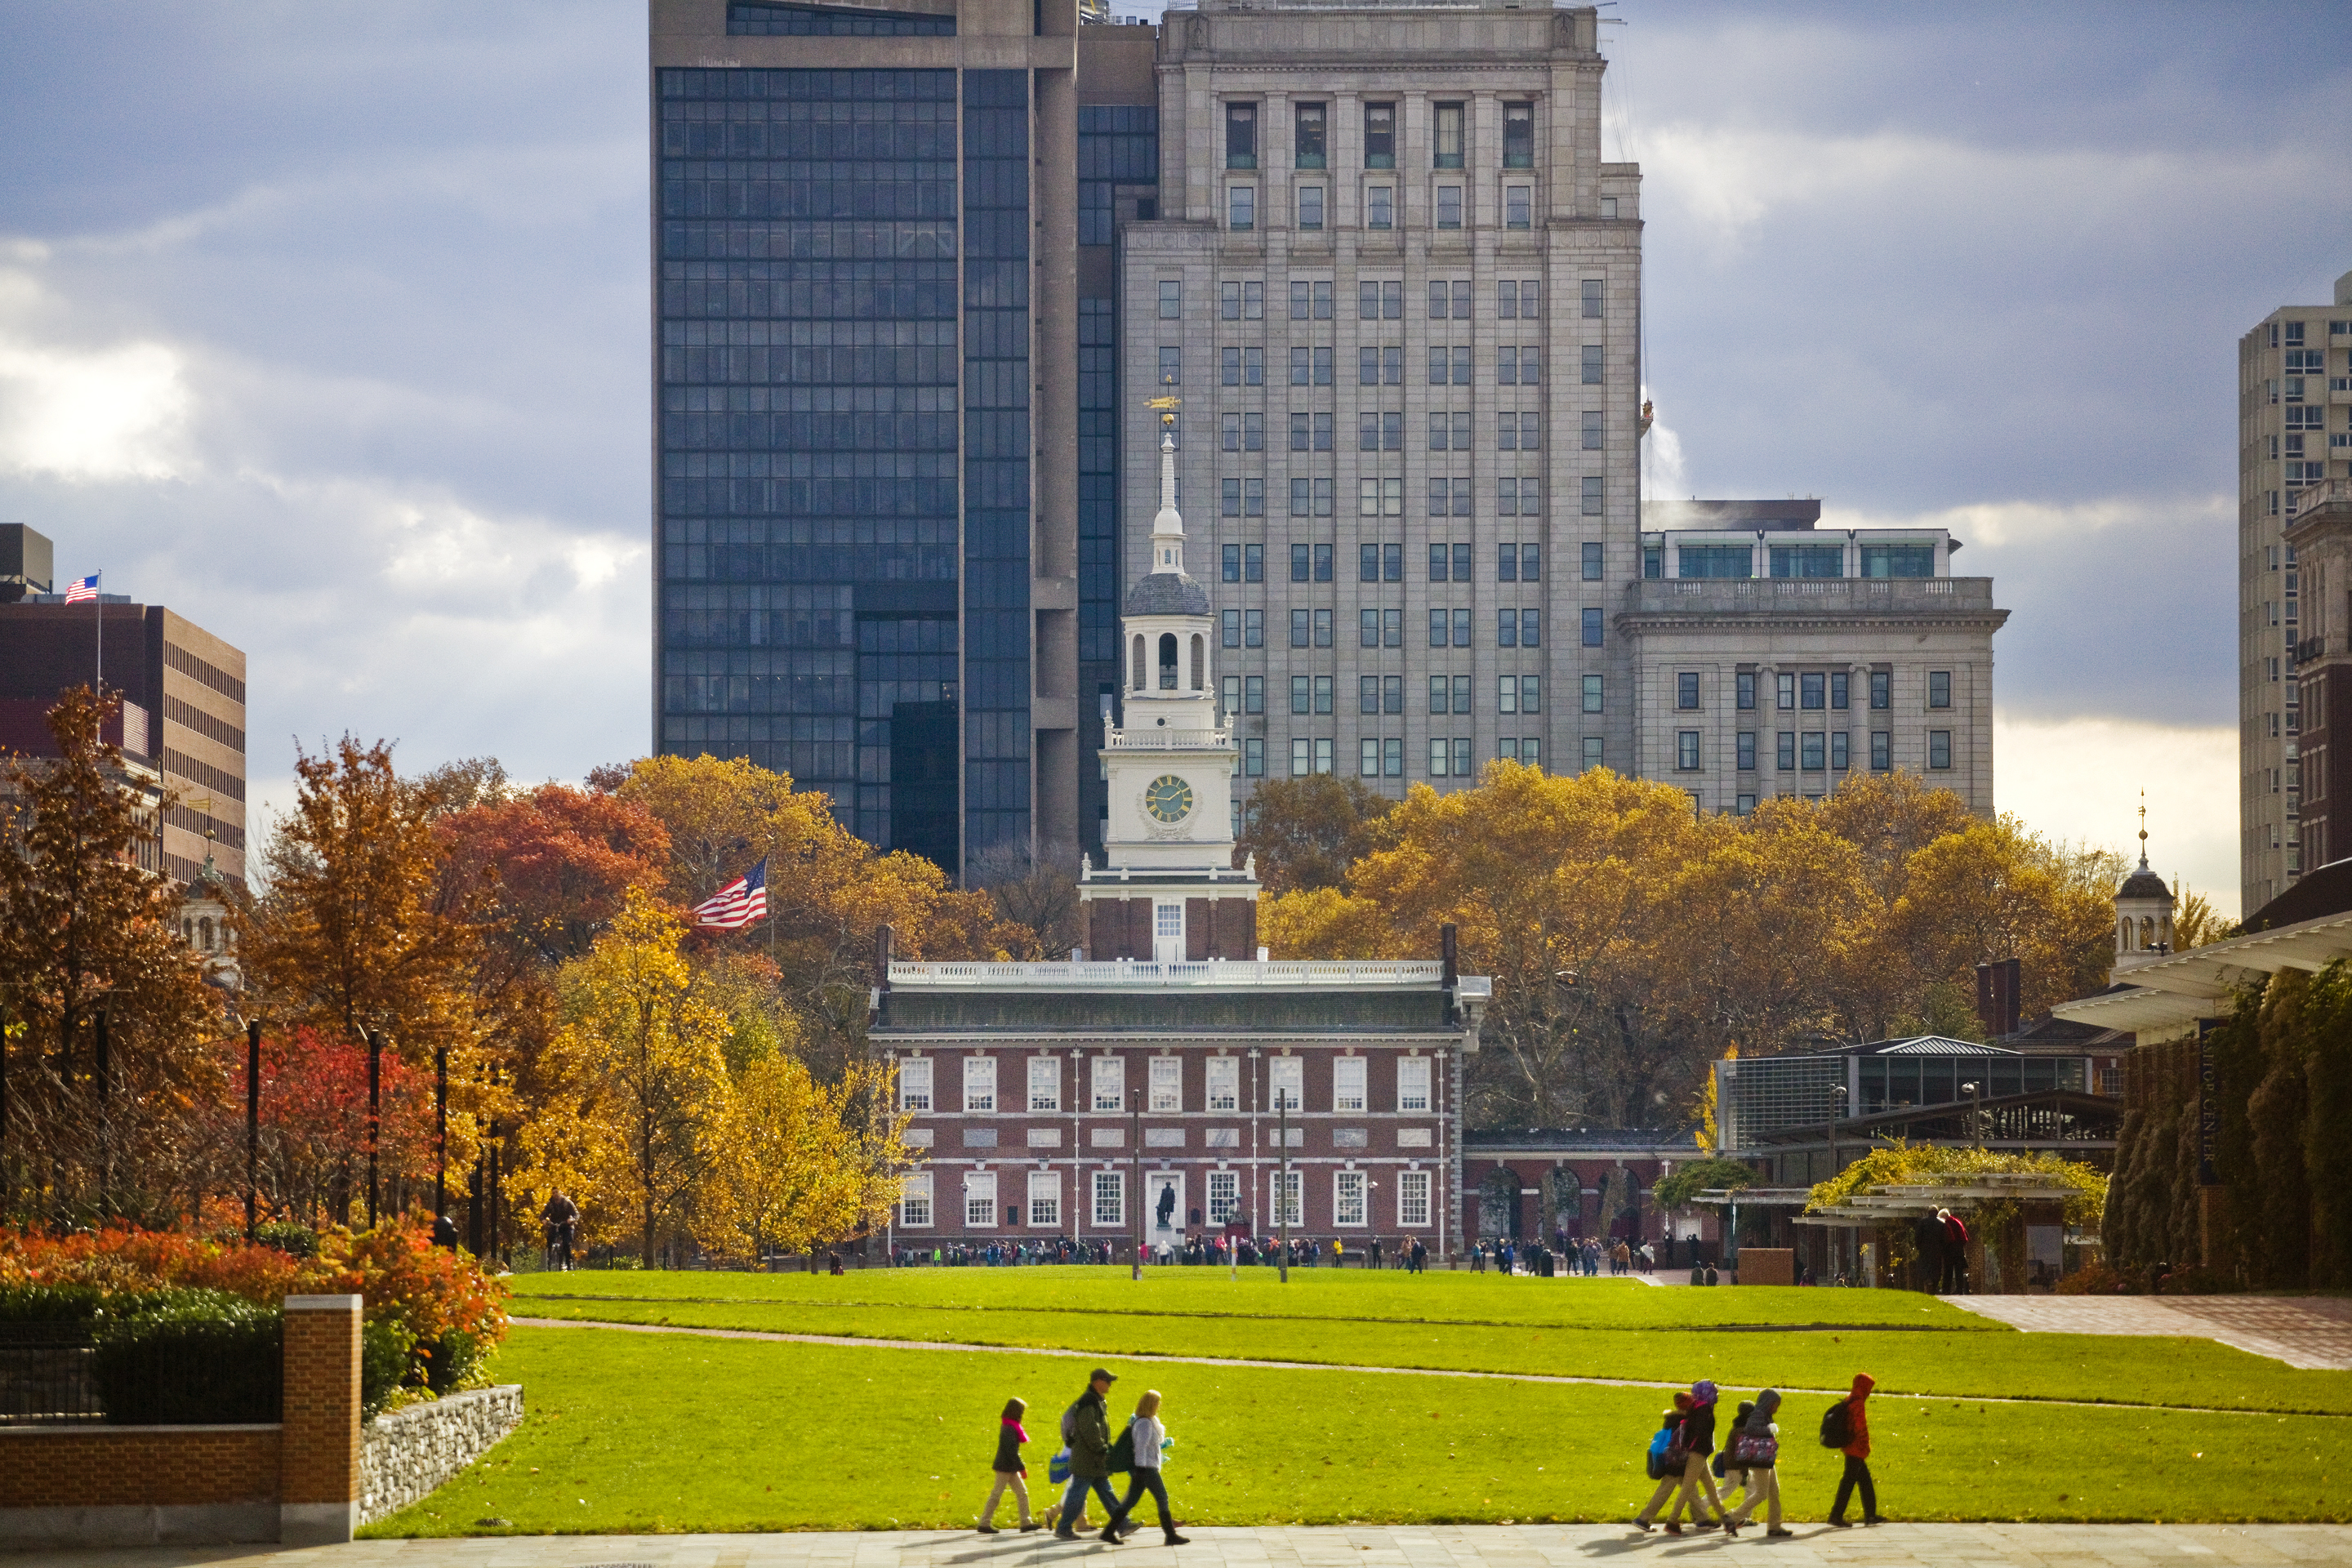 The exterior of Independence Hall in Philadelphia. There are trees surrounding the building with multicolored autumn leaves.